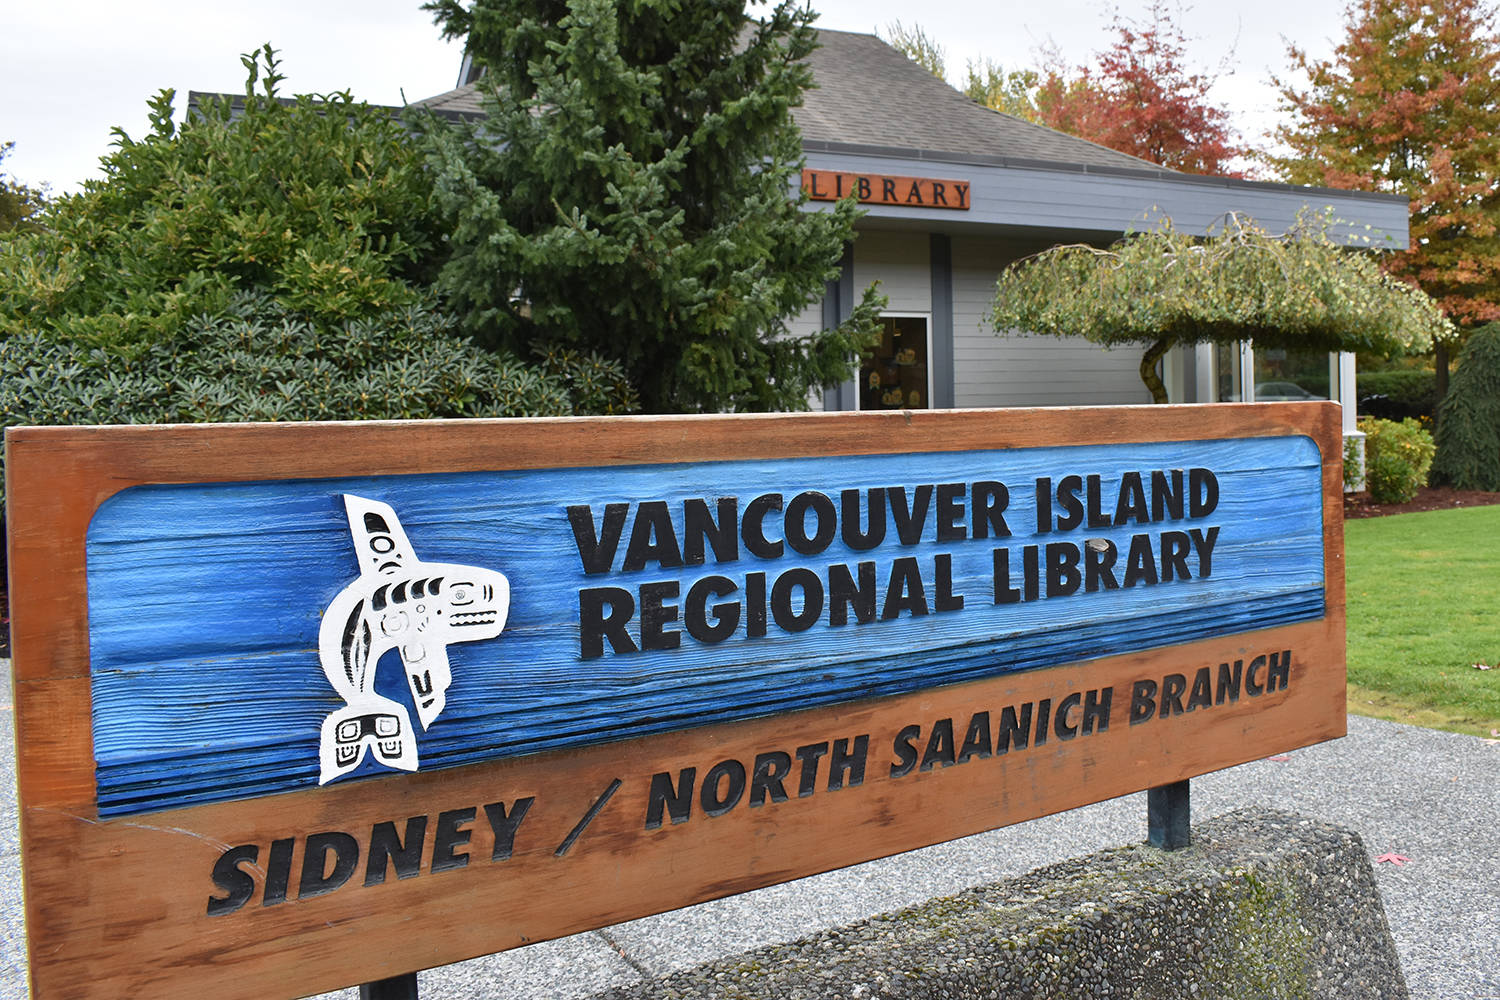 Sidney wasn't and isn't considering leaving current library system, says mayor